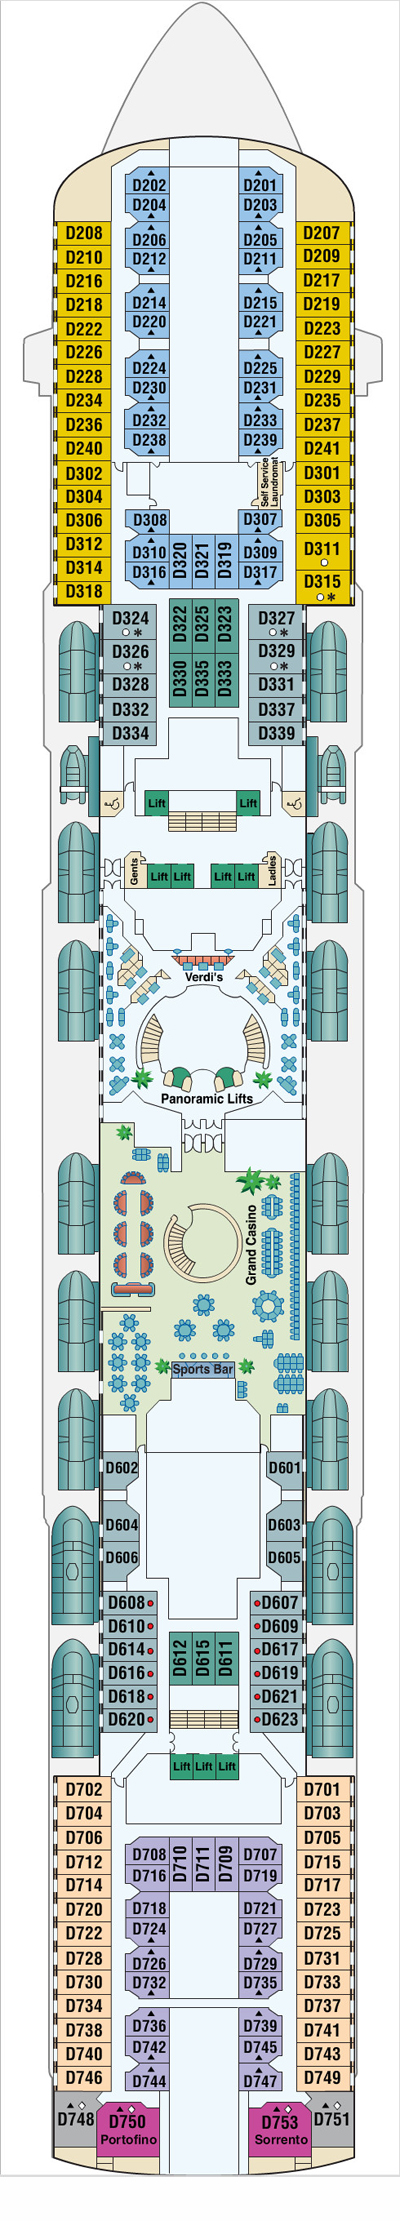 Sun Princess Dolphin Deck 8 layout